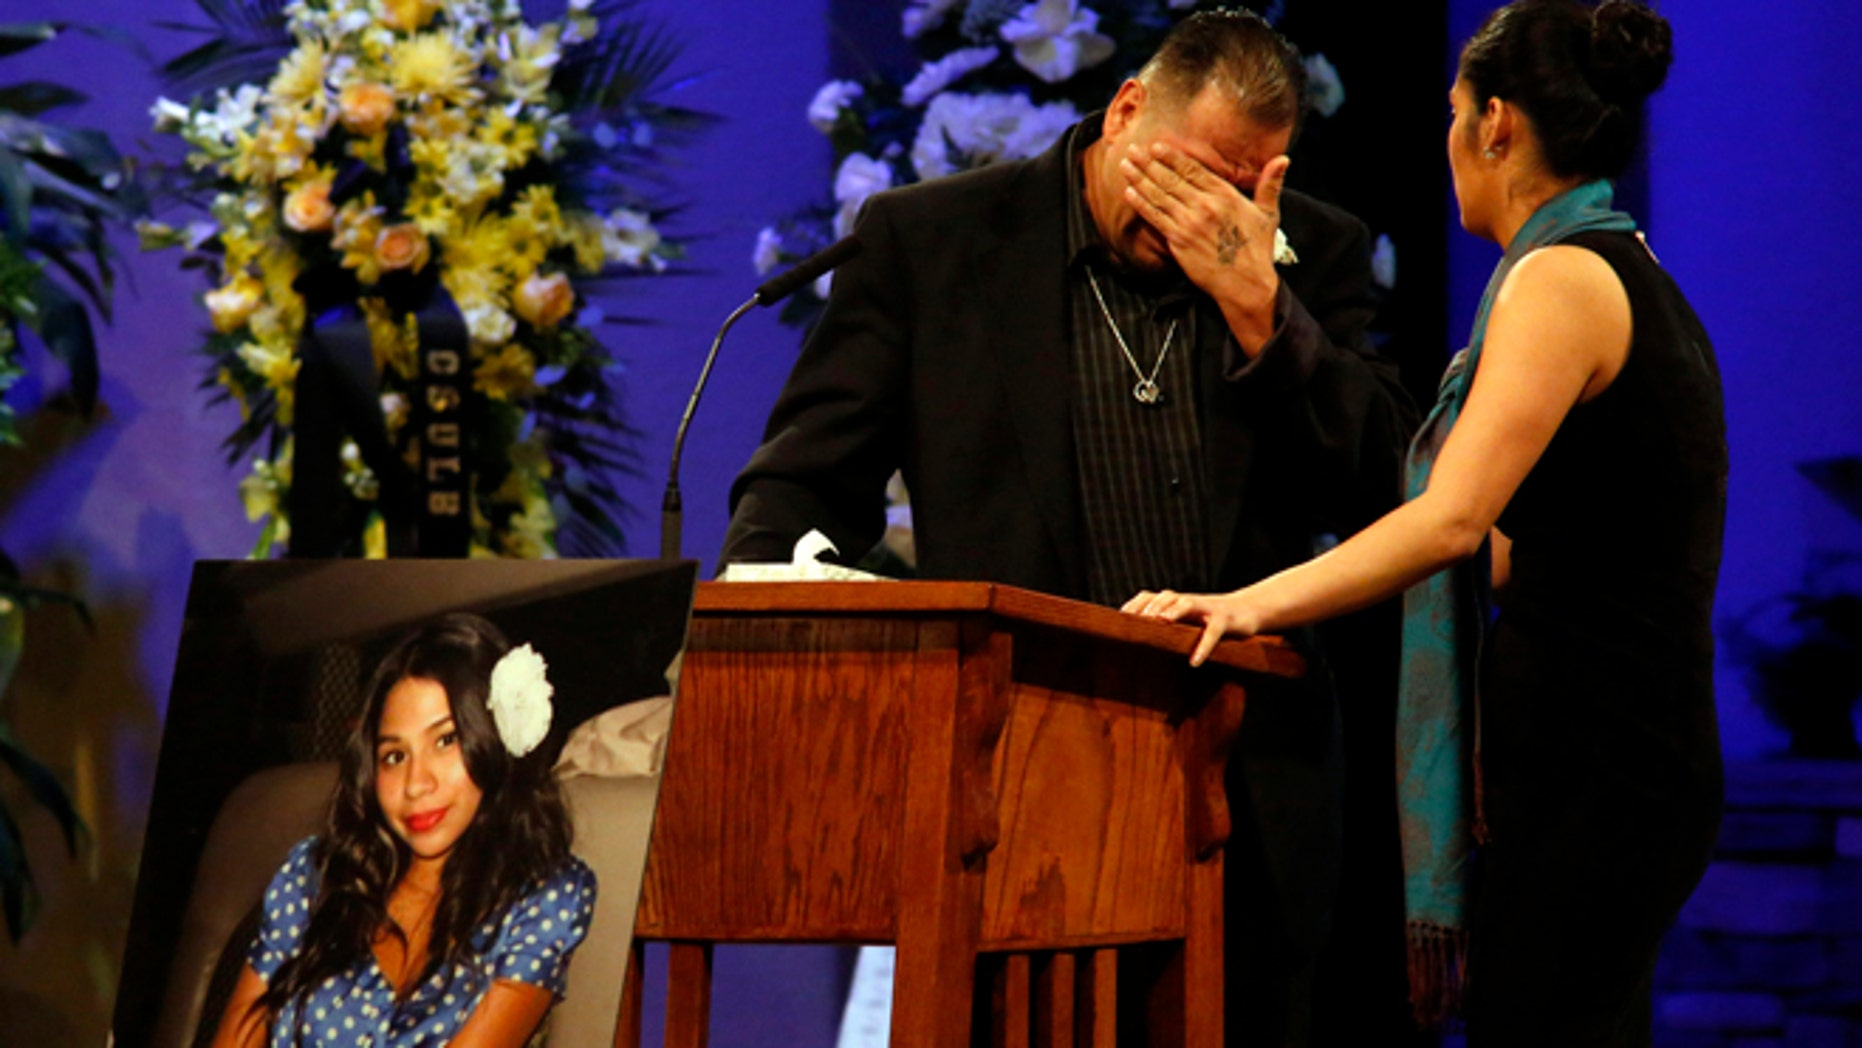 Reynaldo Gonzalez breaks down while remembering his daughter Nohemi Gonzalez, Paris attack victim, at her funeral at the Calvary Chapel in Downey, Calif., Friday, Dec. 4, 2015.  Gonzalez was the 23 year-old Cal State Long Beach student who was killed while dining with friends at a bistro in Paris last month.  (Genaro Molina/Los Angeles Times via AP, Pool)